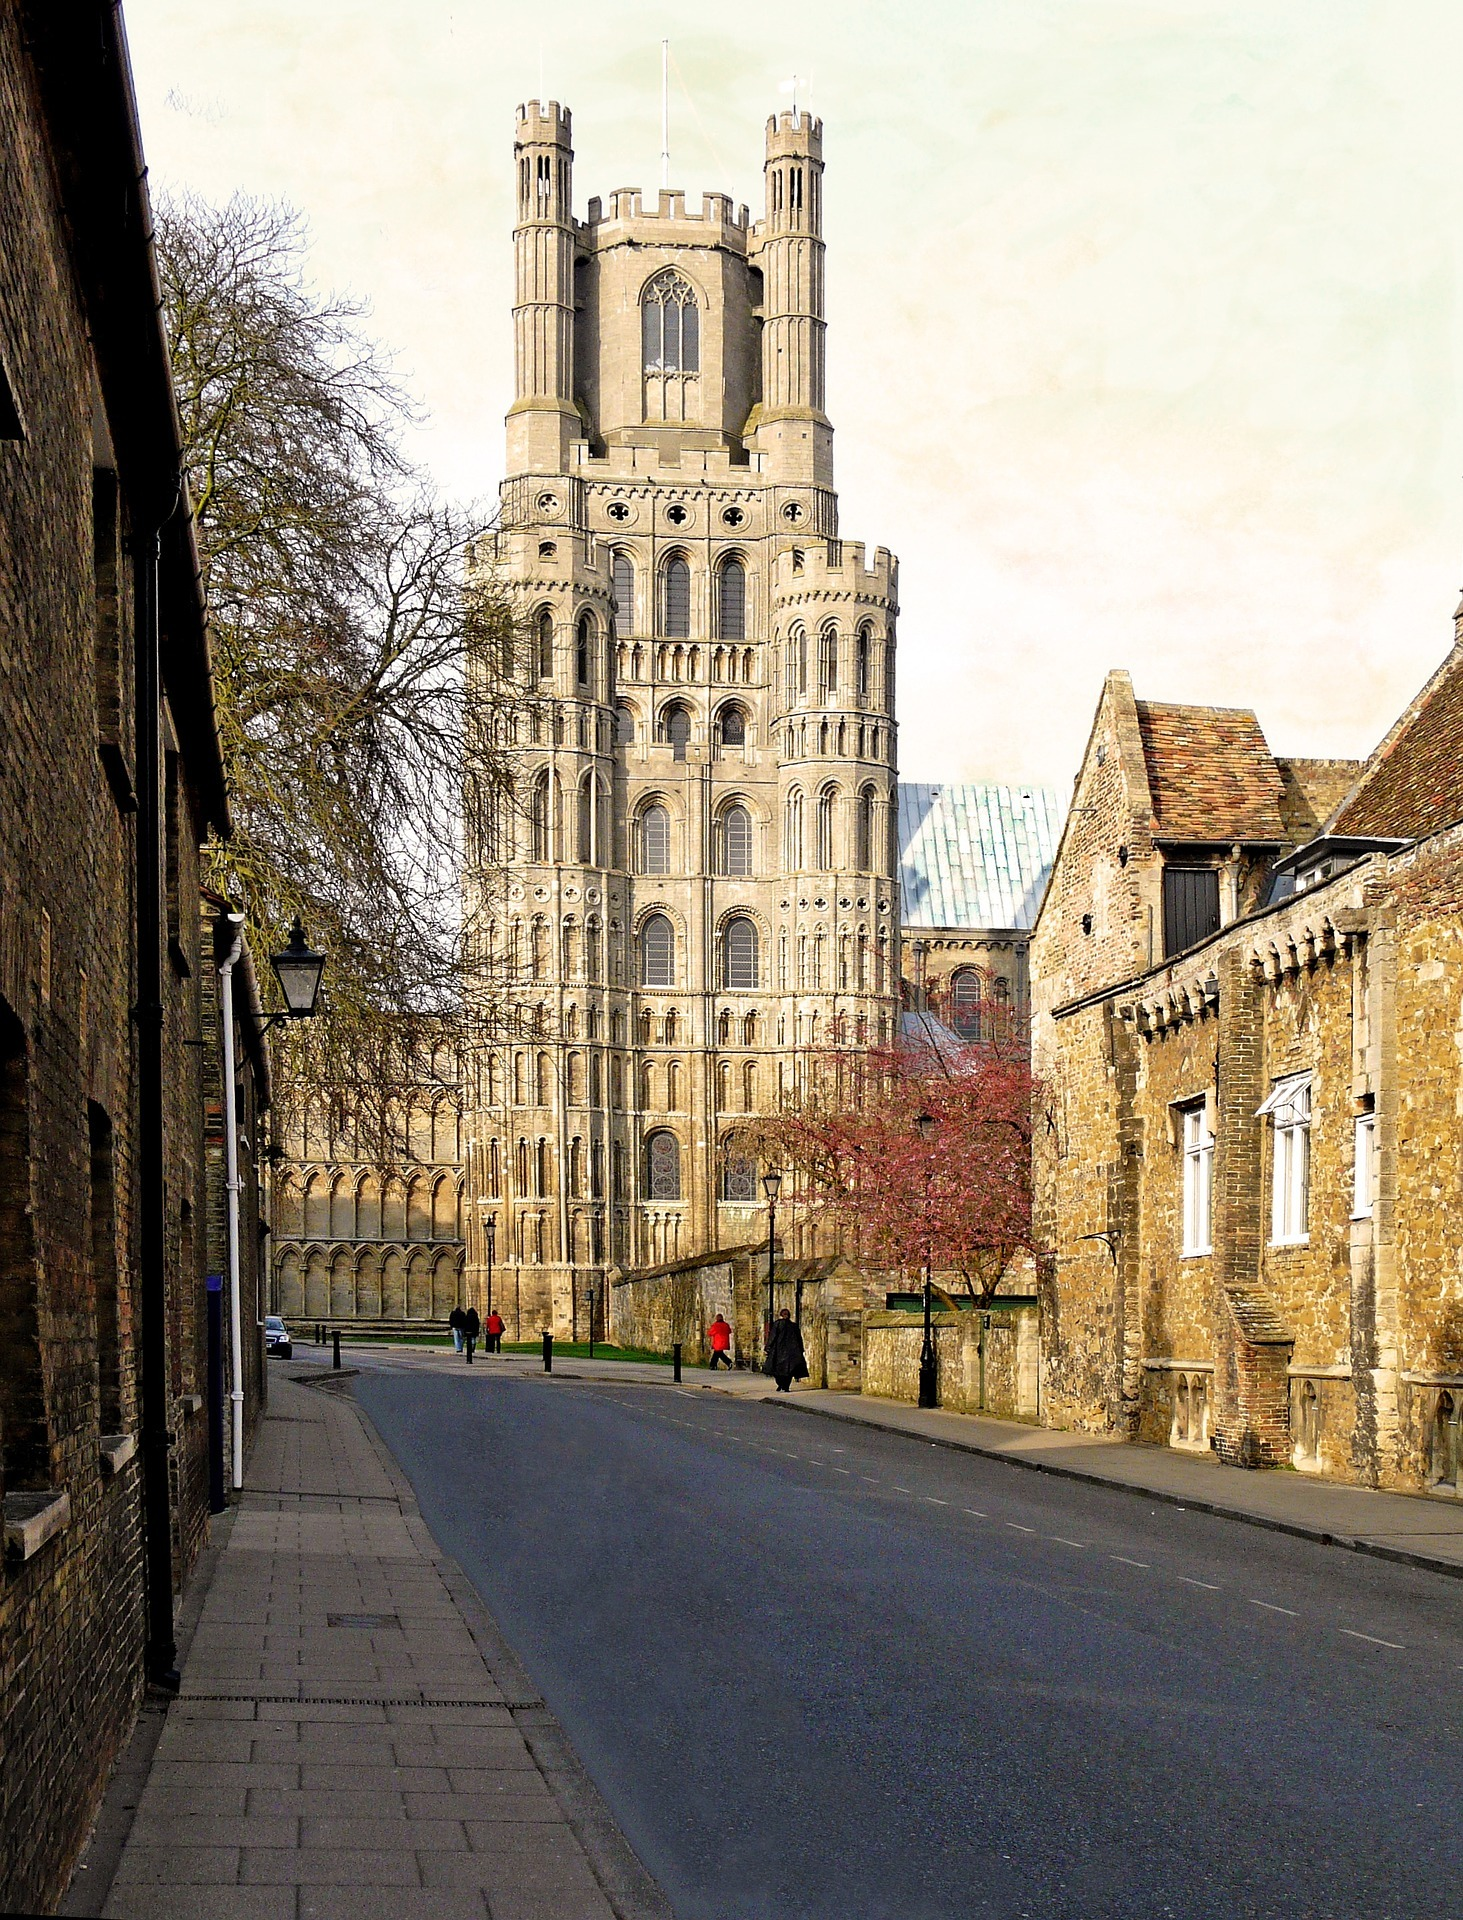 Etheldreda founded a monastry on the site of the current Ely Cathedral     Picture: Pixaby